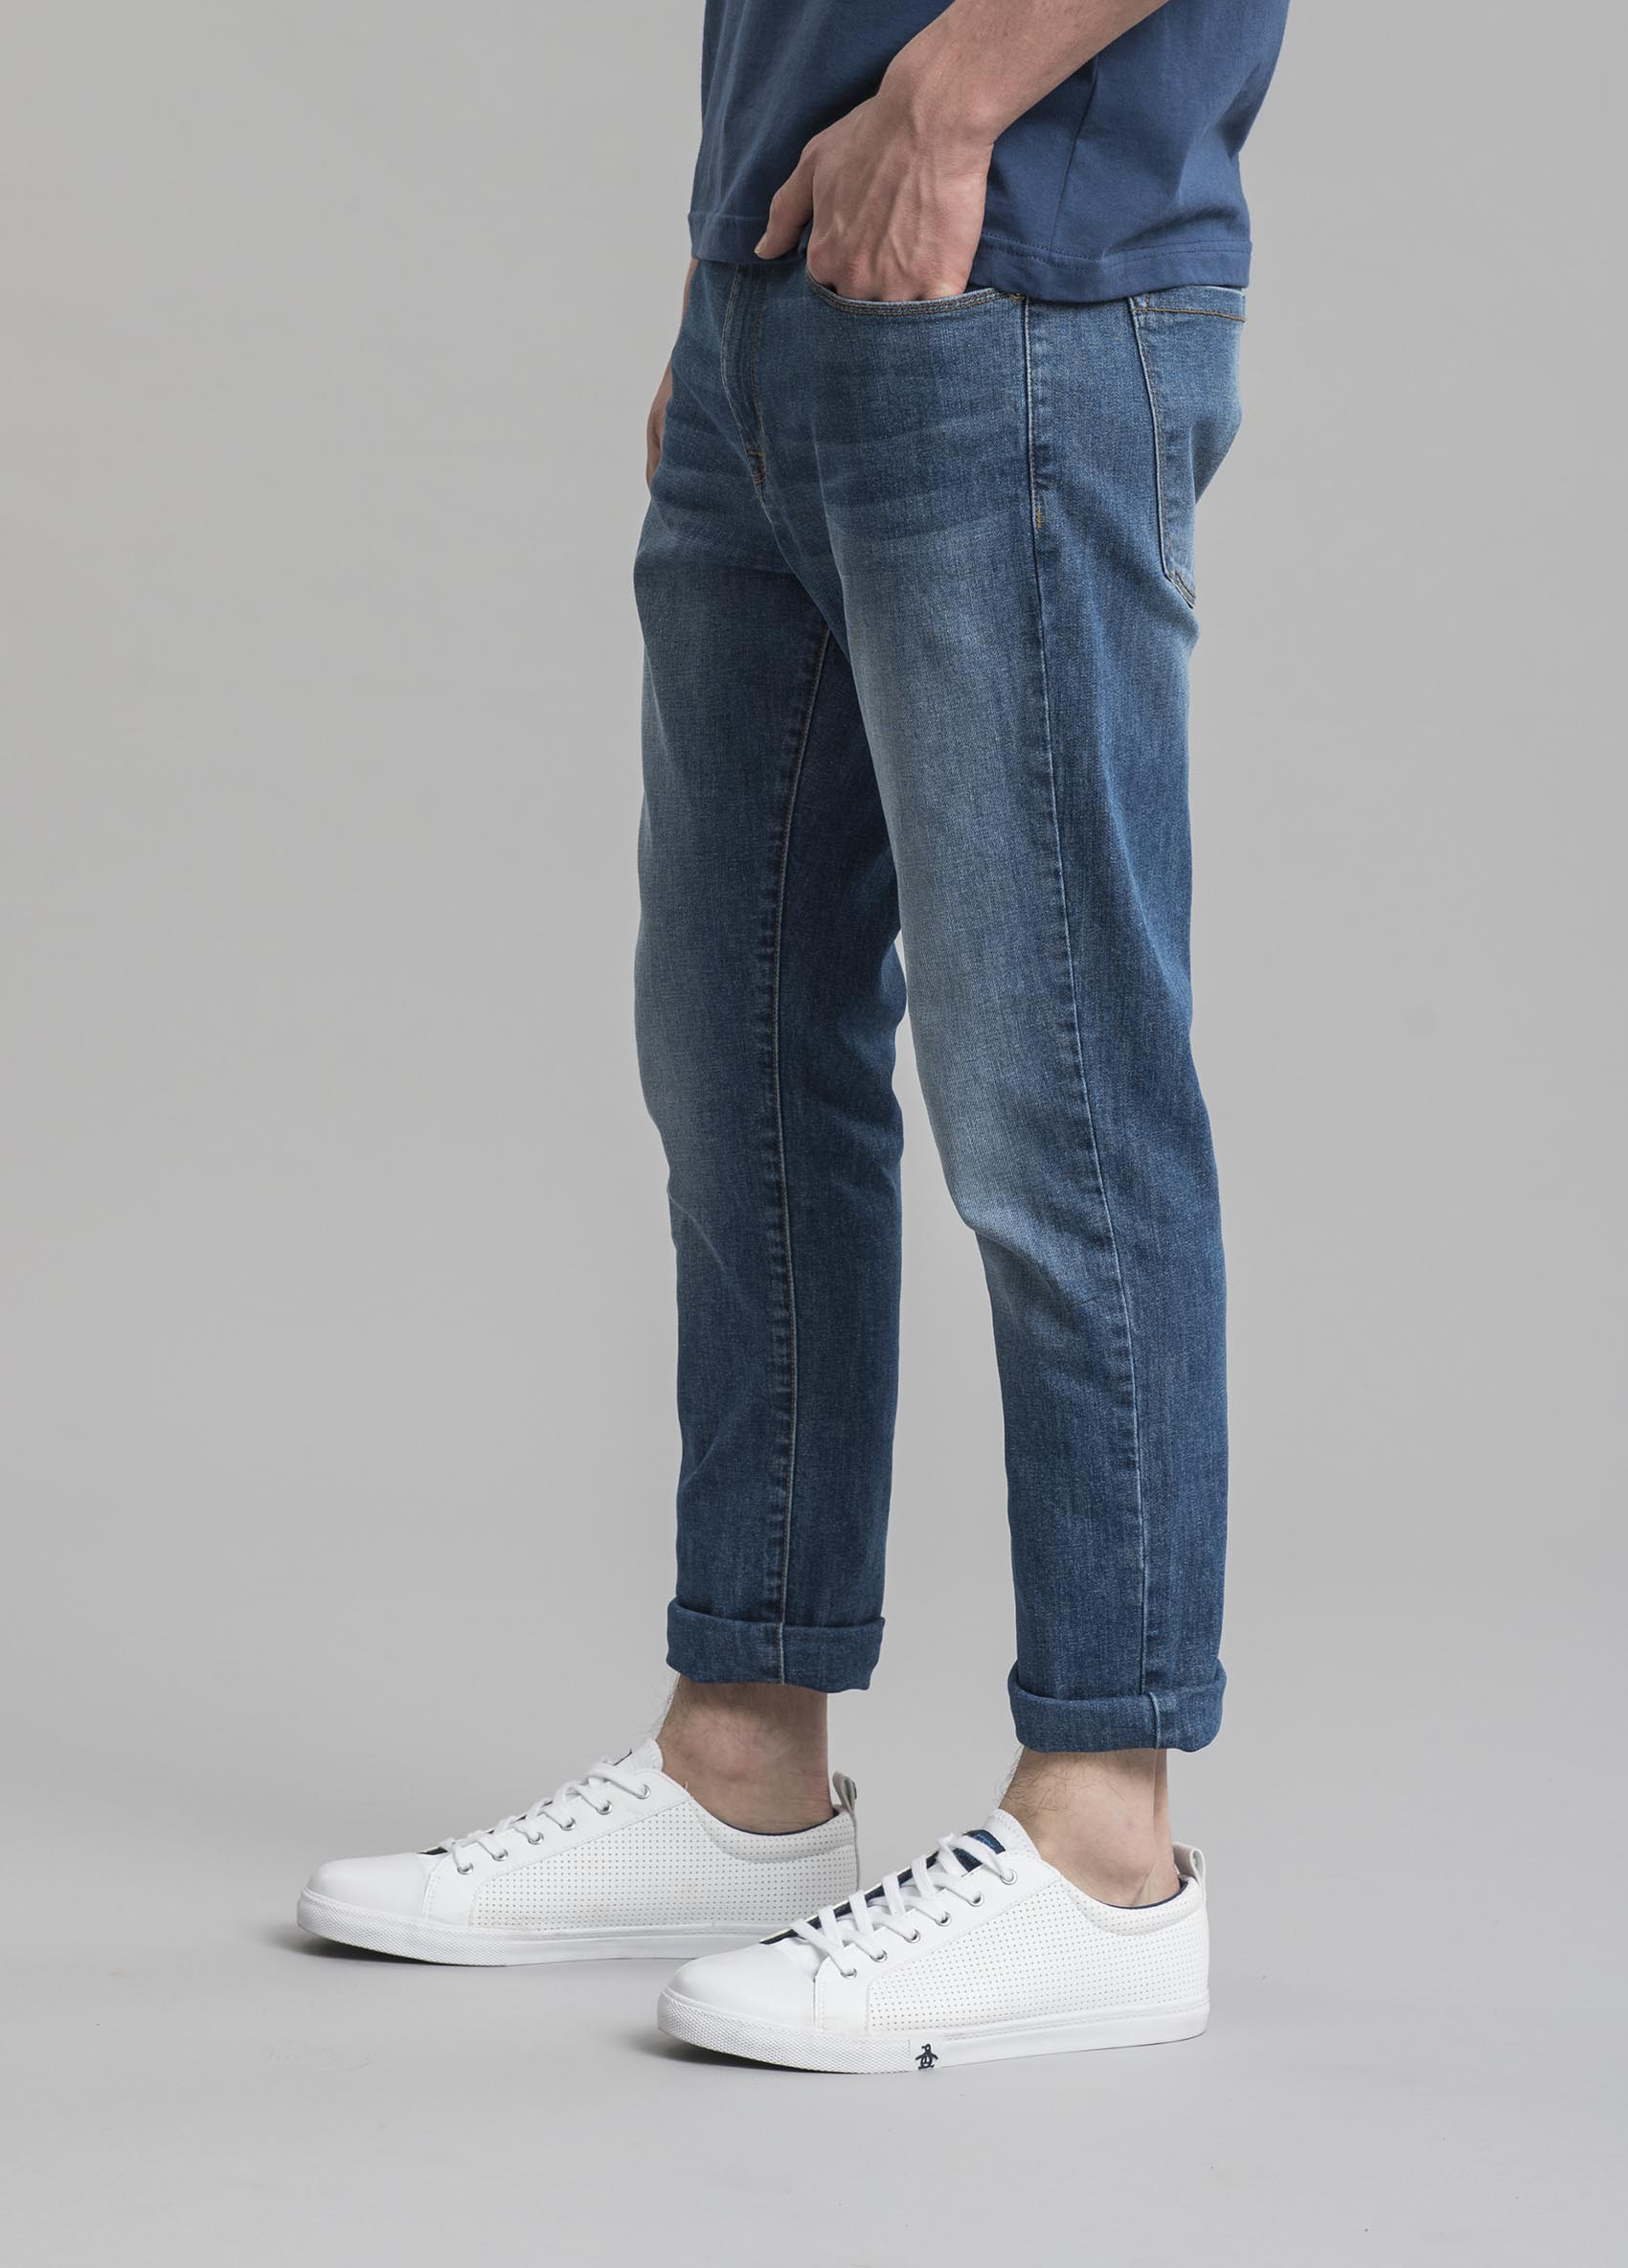 penguin_5-pkt-denim-skinny_04-28-2020__picture-12308